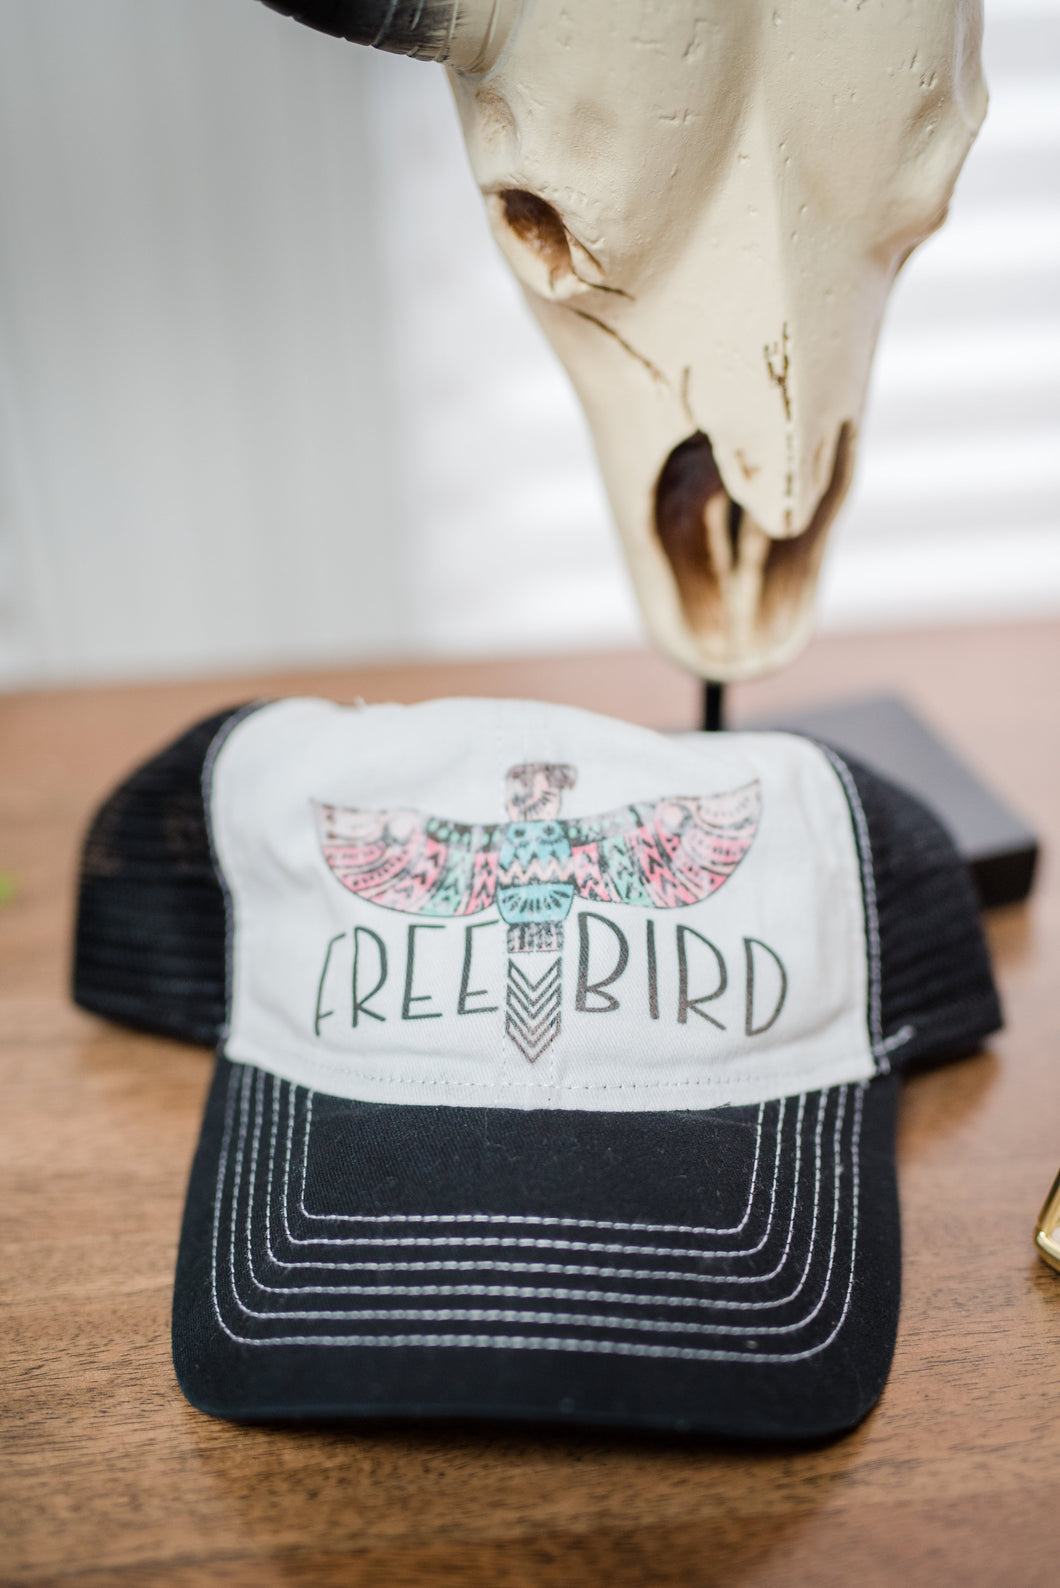 Free Bird Baseball Hat